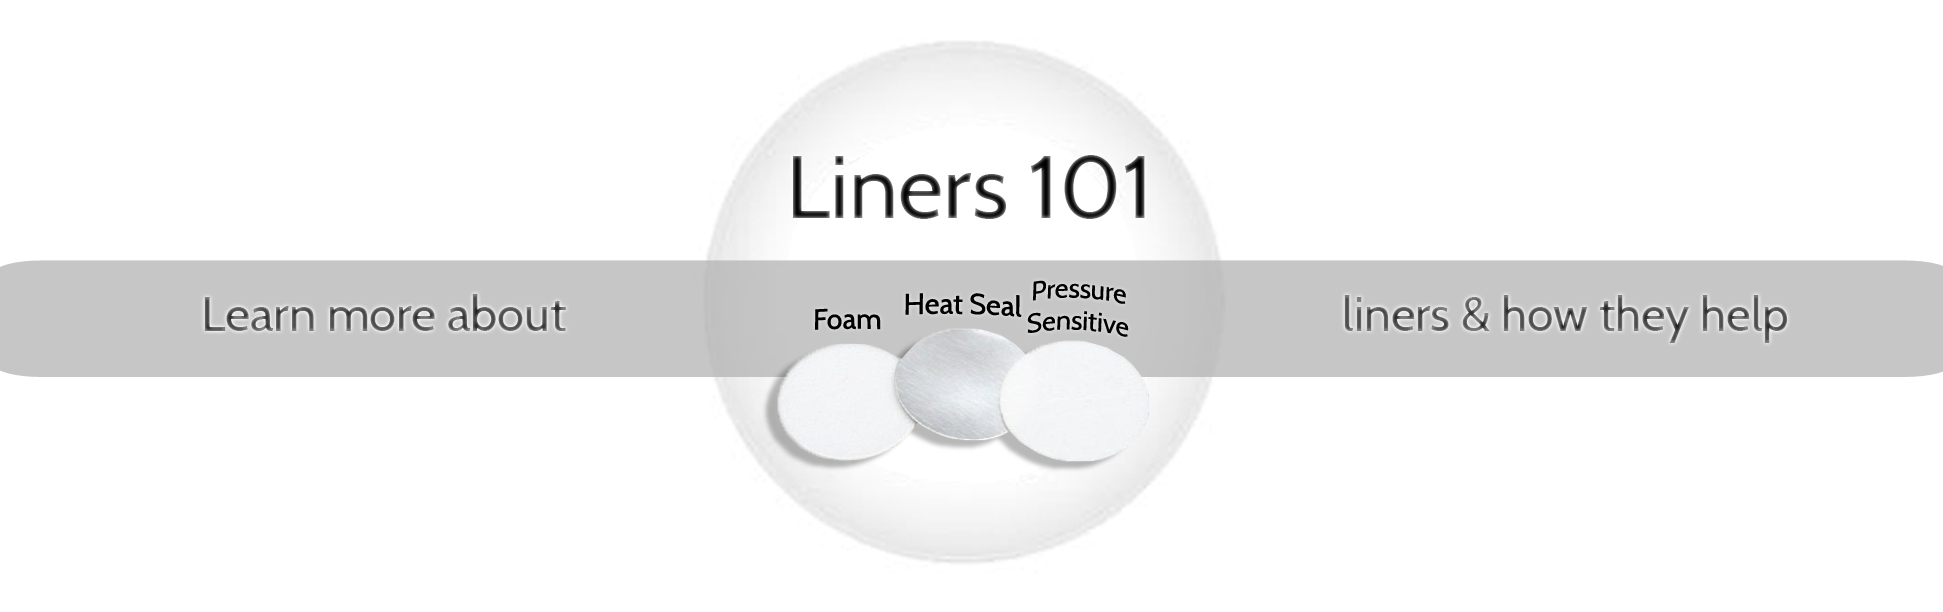 new-liners-101-banner-1-edited-13-cap-style.jpg